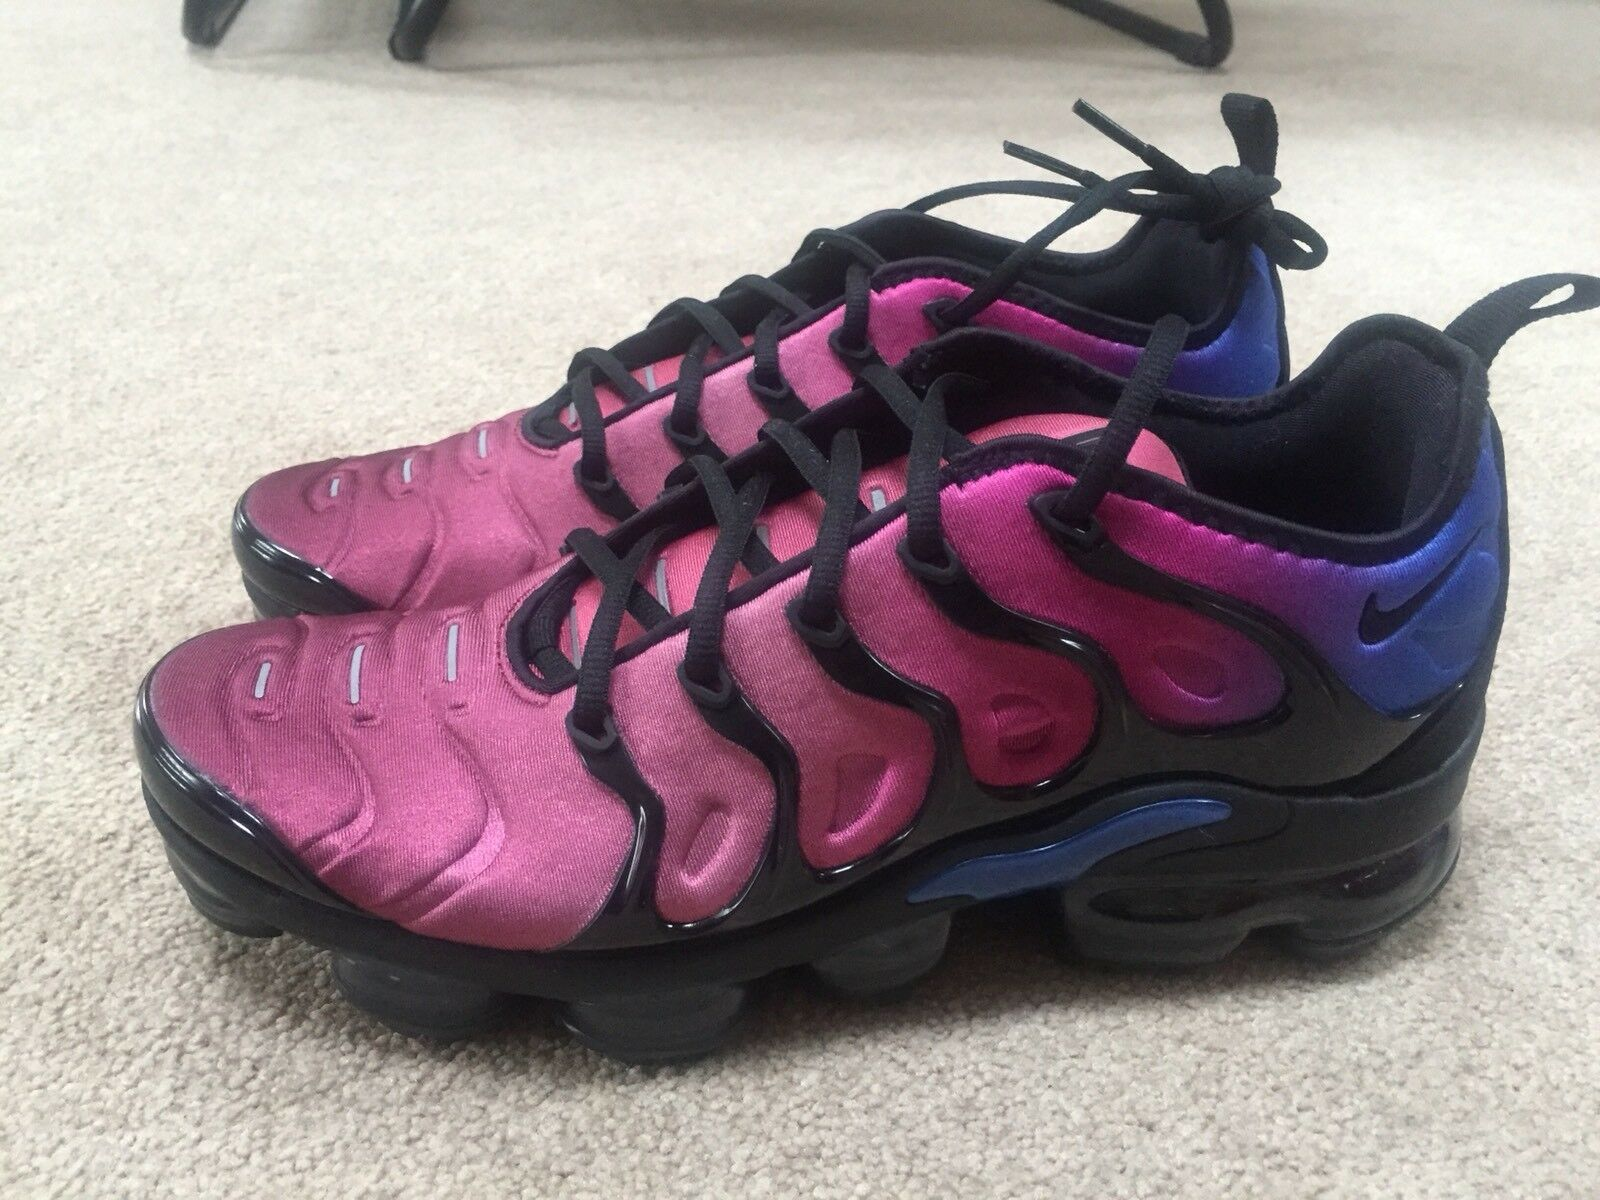 EXCLUSIVE NIKE VAPORMAX PLUS BLACK TEAM RED HYPER VIOLET Comfortable The most popular shoes for men and women